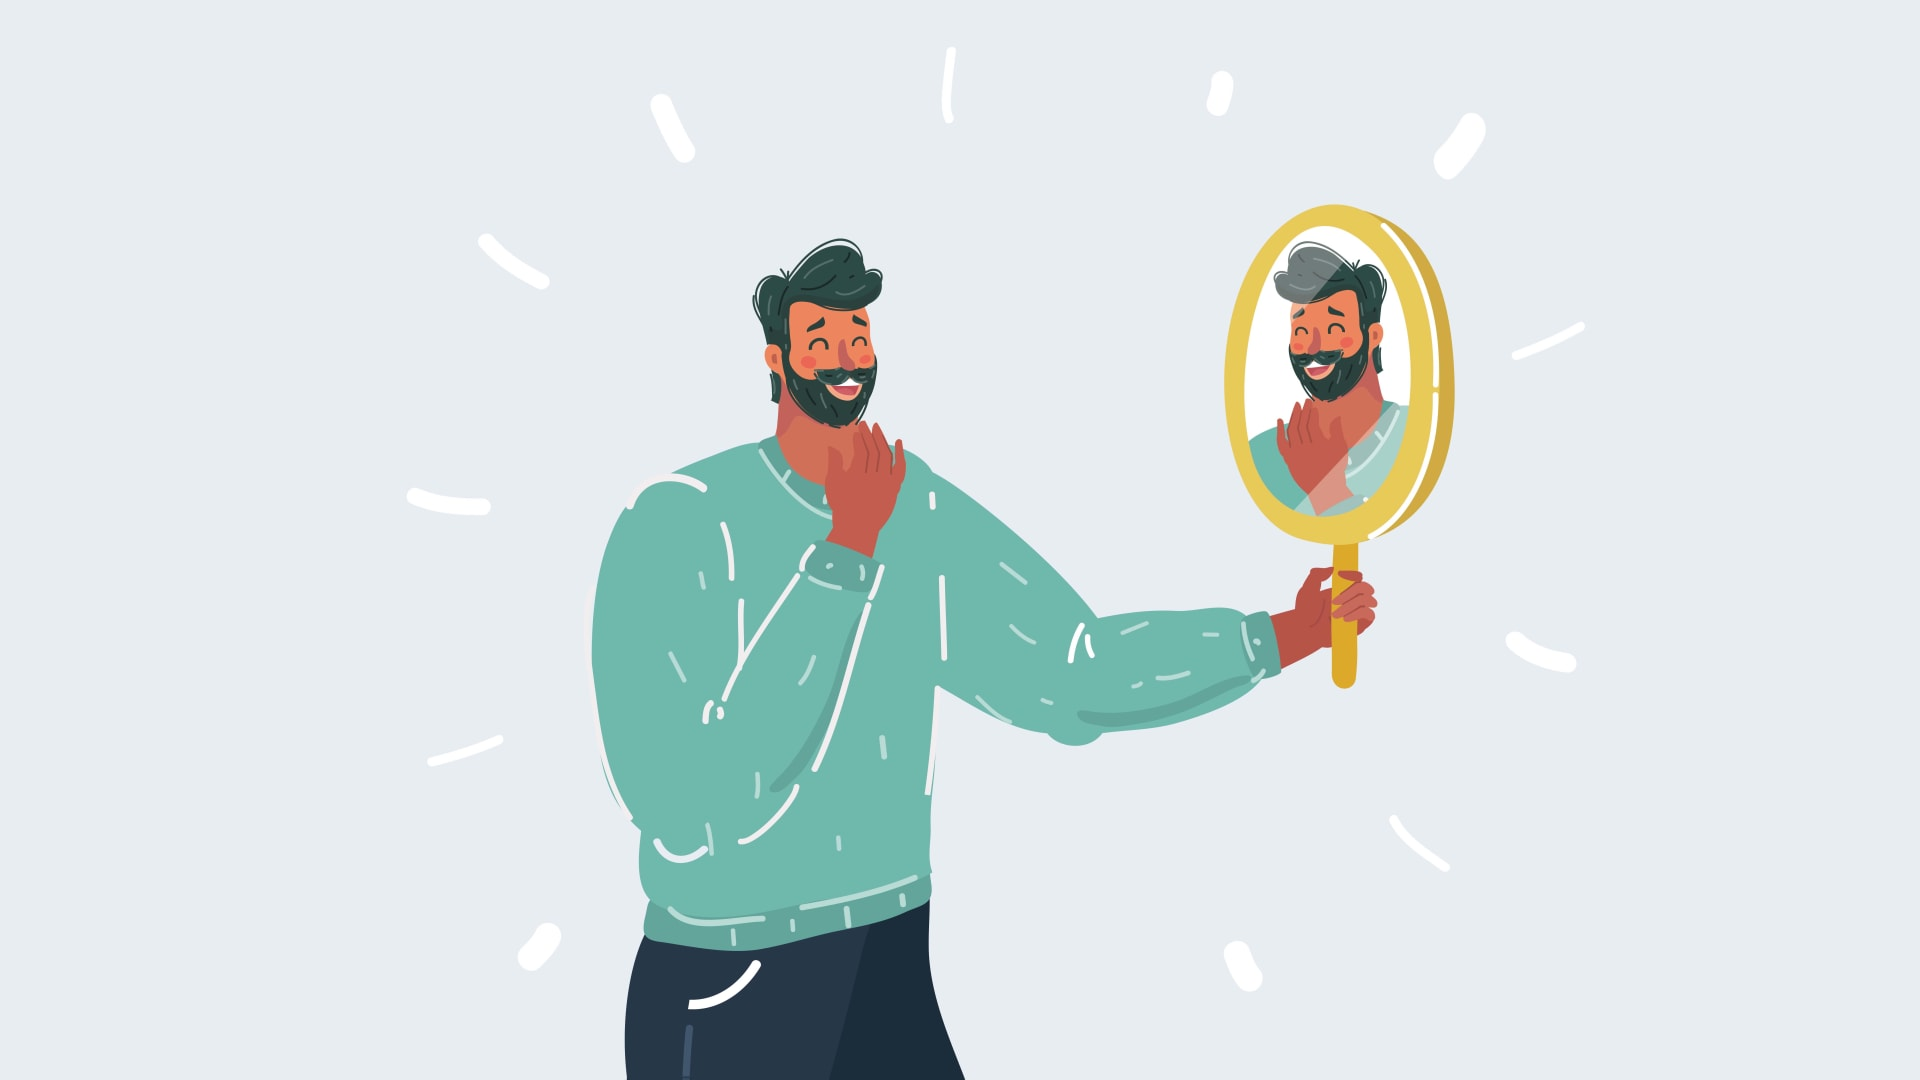 How to Avoid Hiring Charming Narcissists